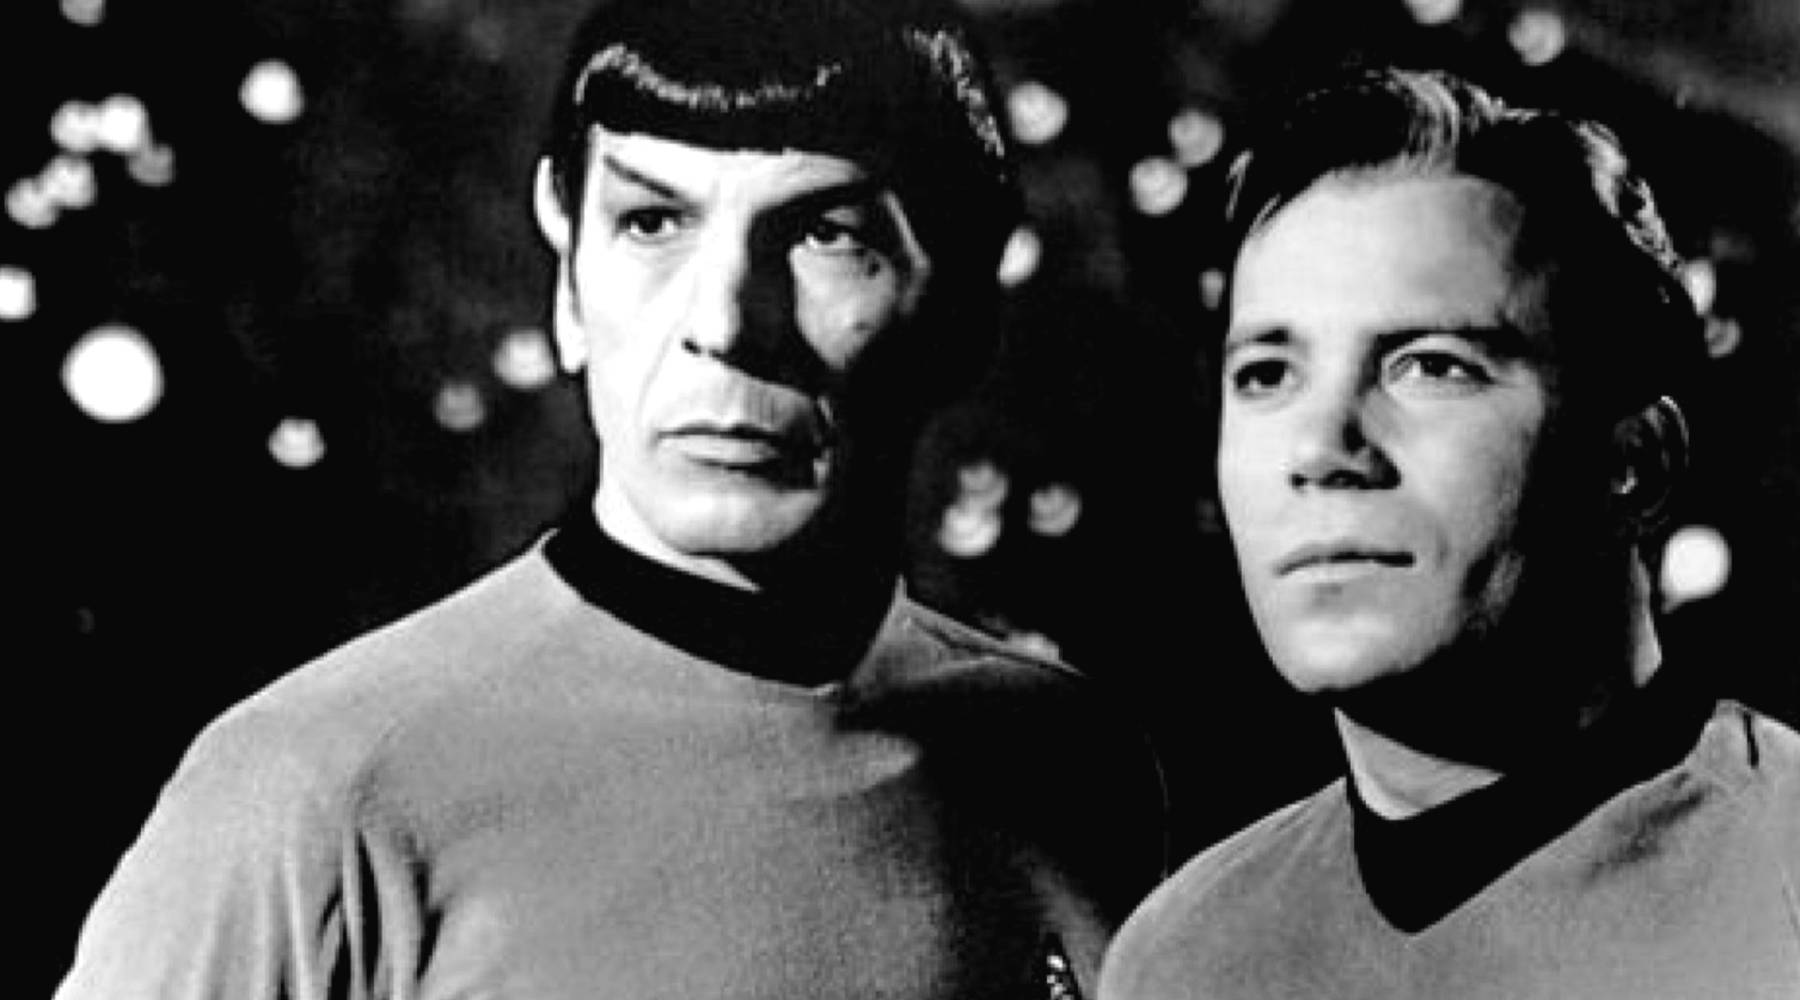 """Leonard Nimoy and William Shatner as Mr. Spock and Capt. Kirk from """"Star Trek.""""-  Wikimedia Commons"""